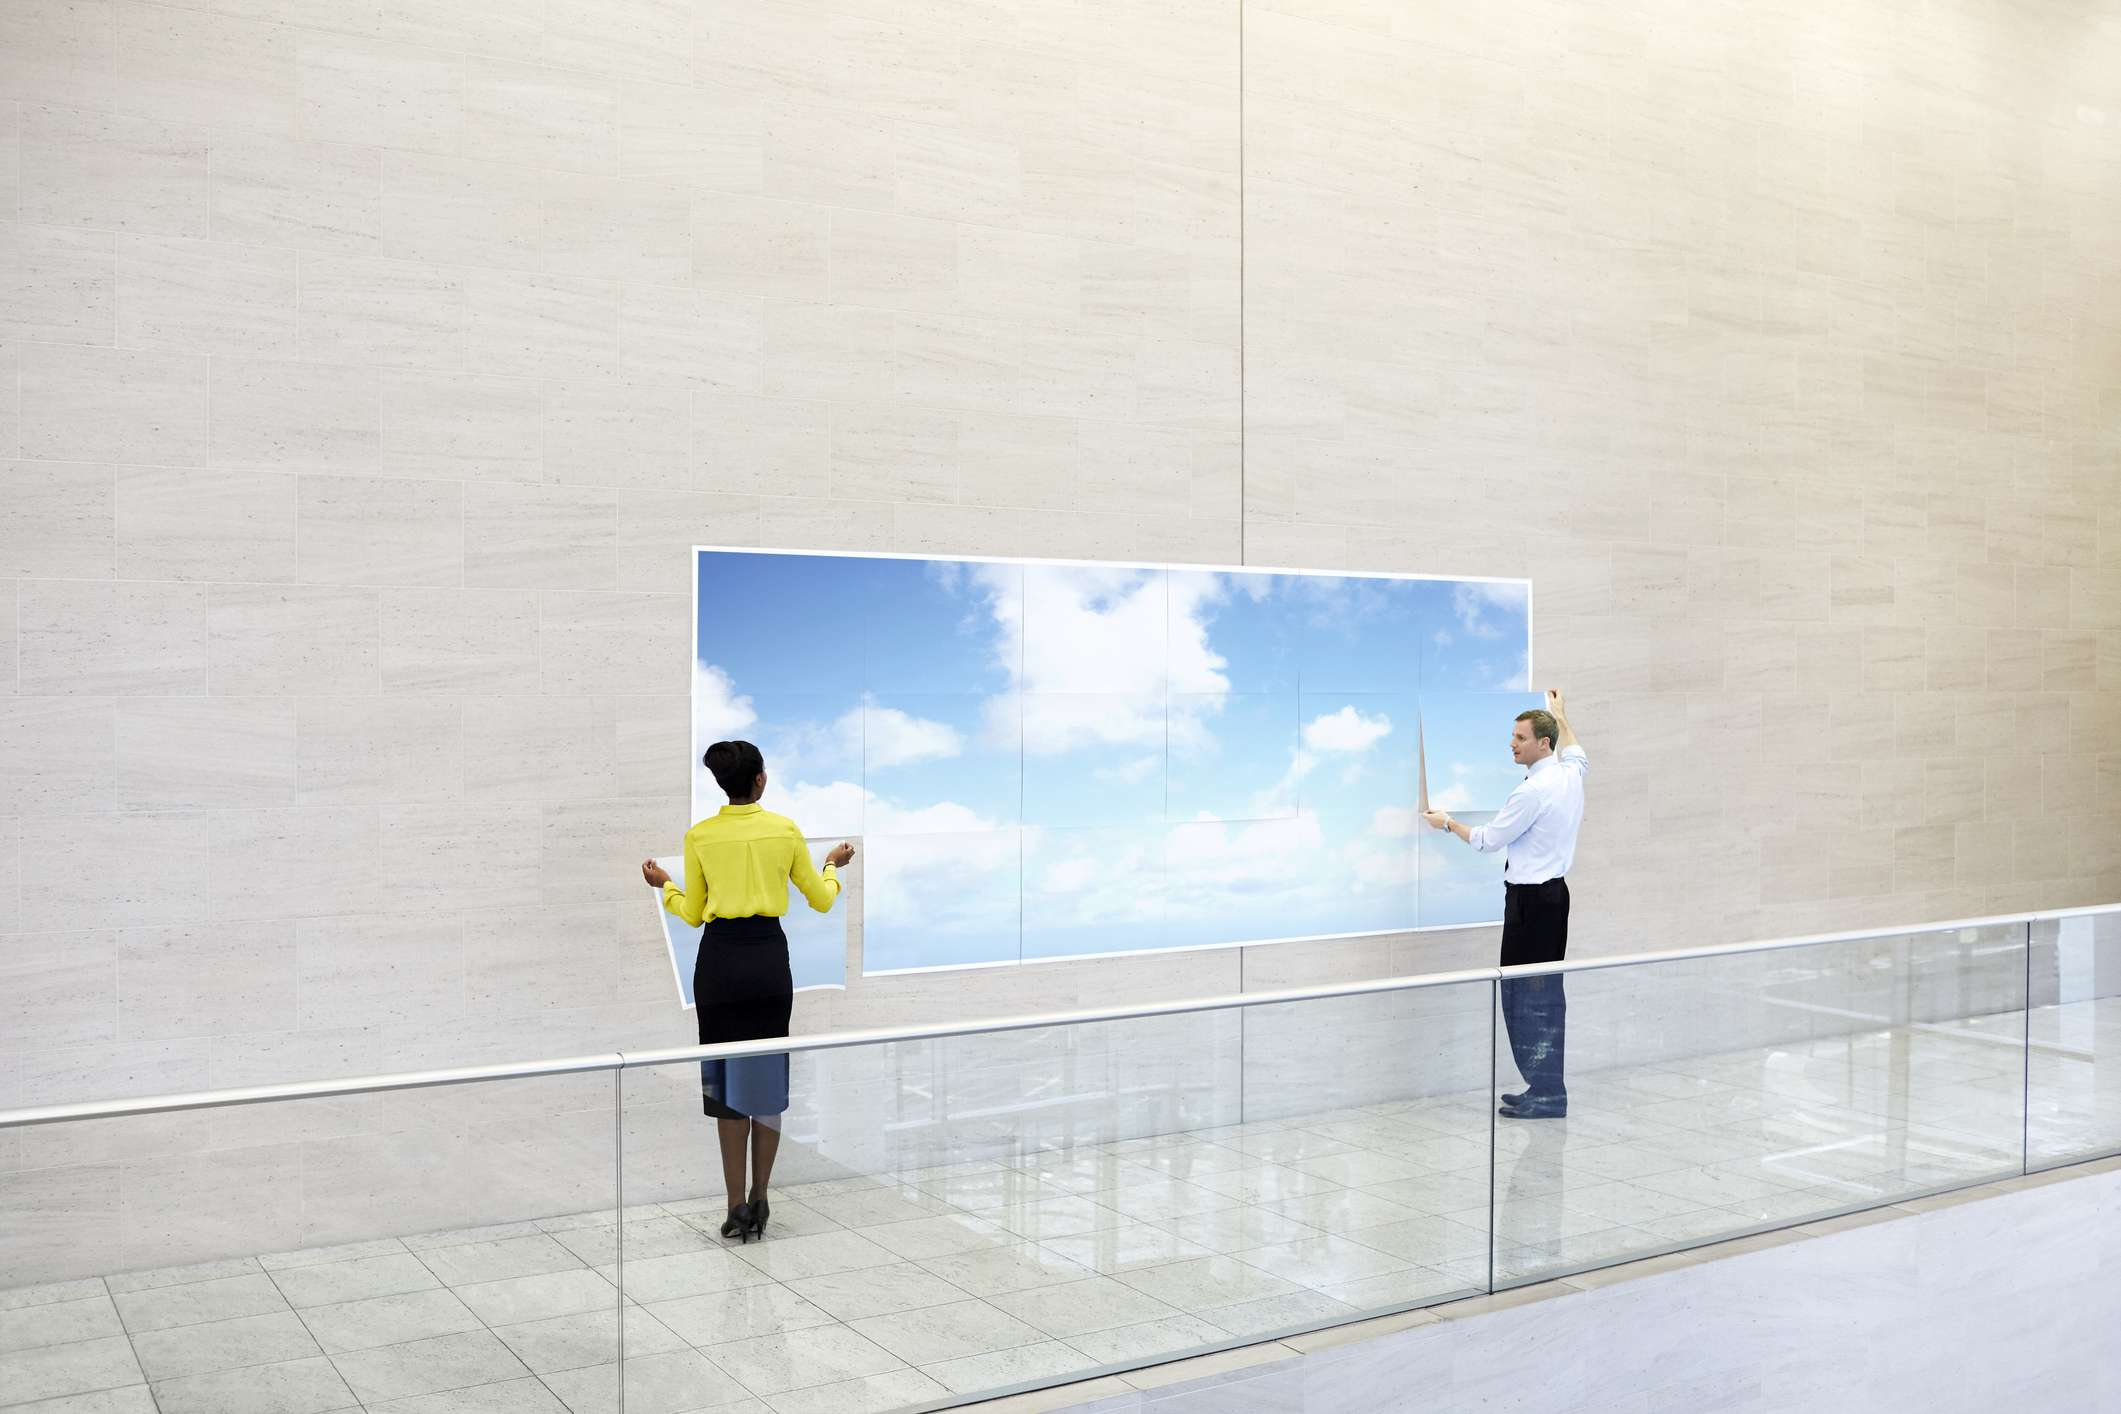 An sky and cloud art piece that looks like a large window created with large pieces of paper stuck to a wall